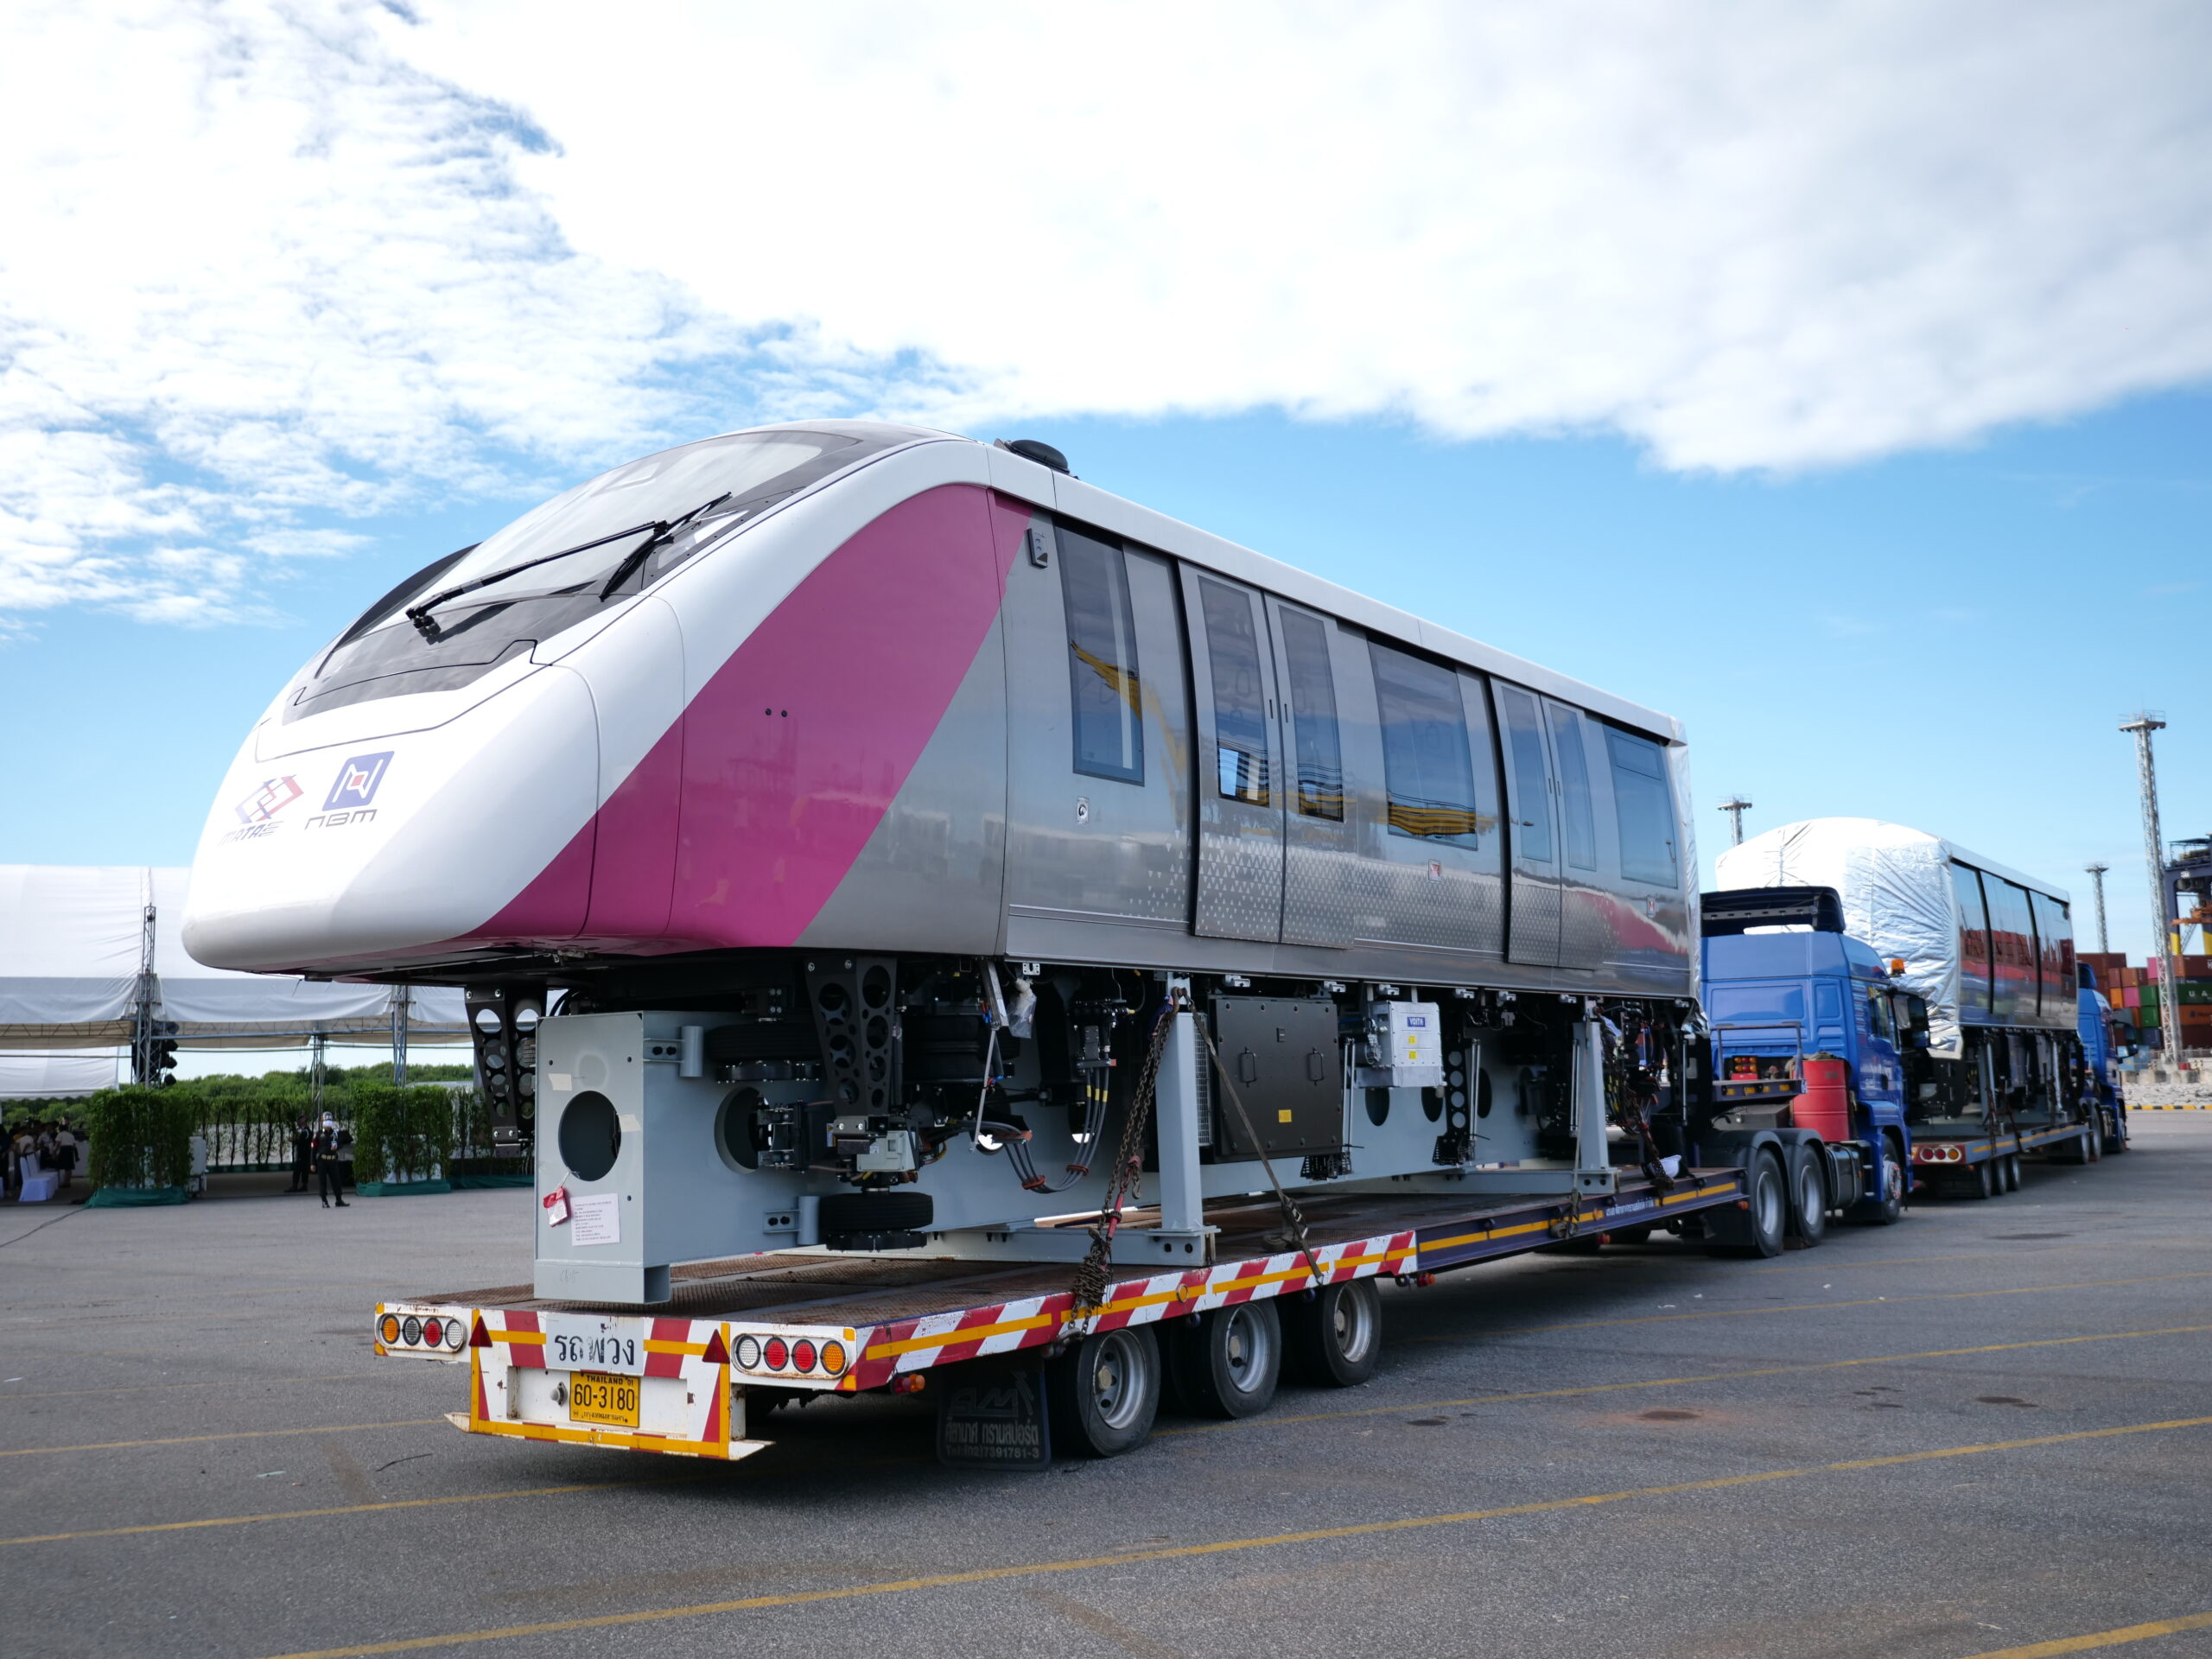 The first Bombardier INNOVIA monorail 300 vehicle for Bangkok